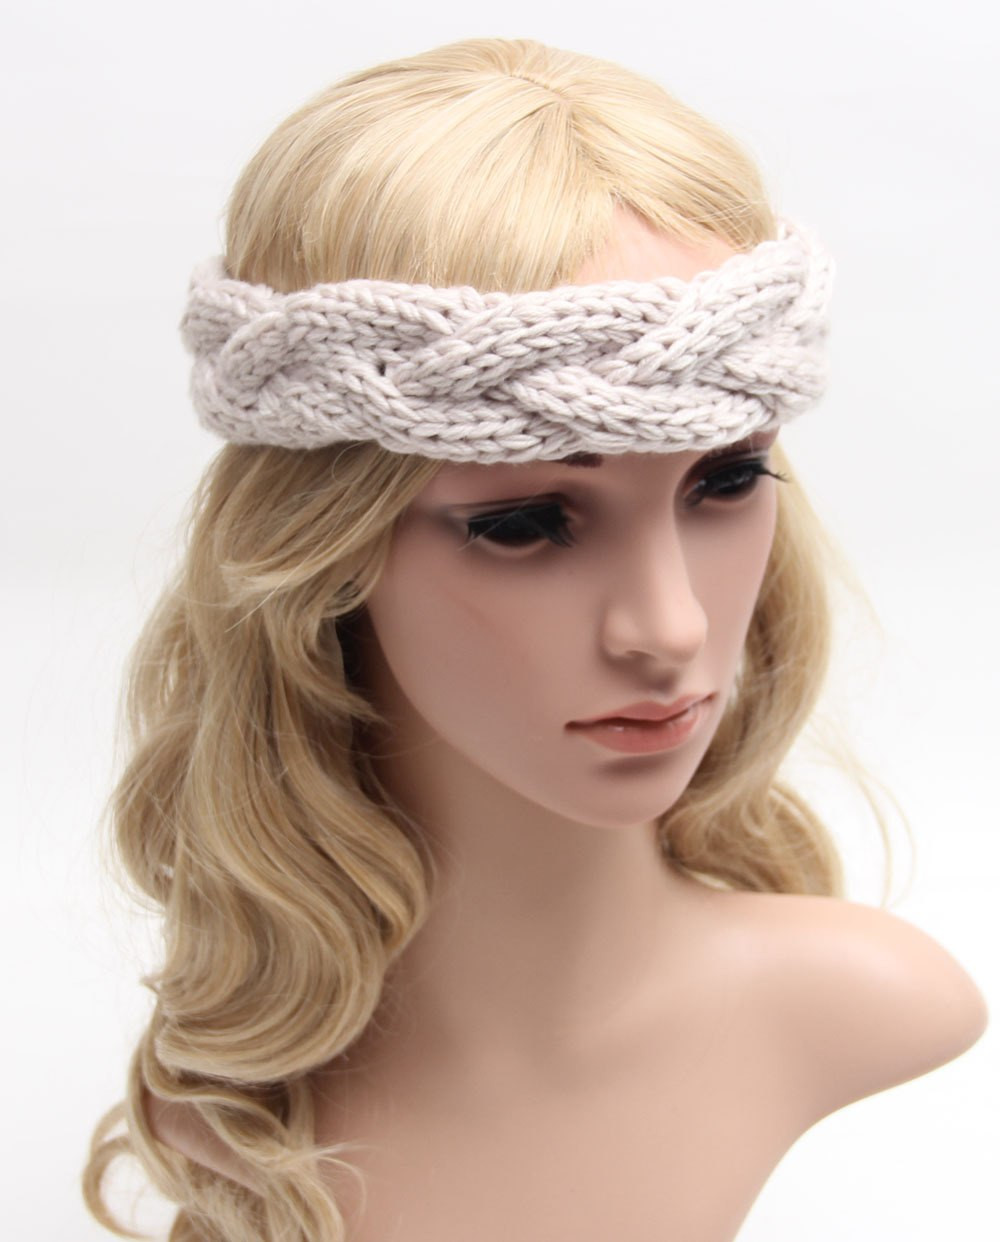 Best Of Knitted Headband Knit Hair Band Turban Headband Knitted Knit Winter Headband Of Charming 42 Pictures Knit Winter Headband